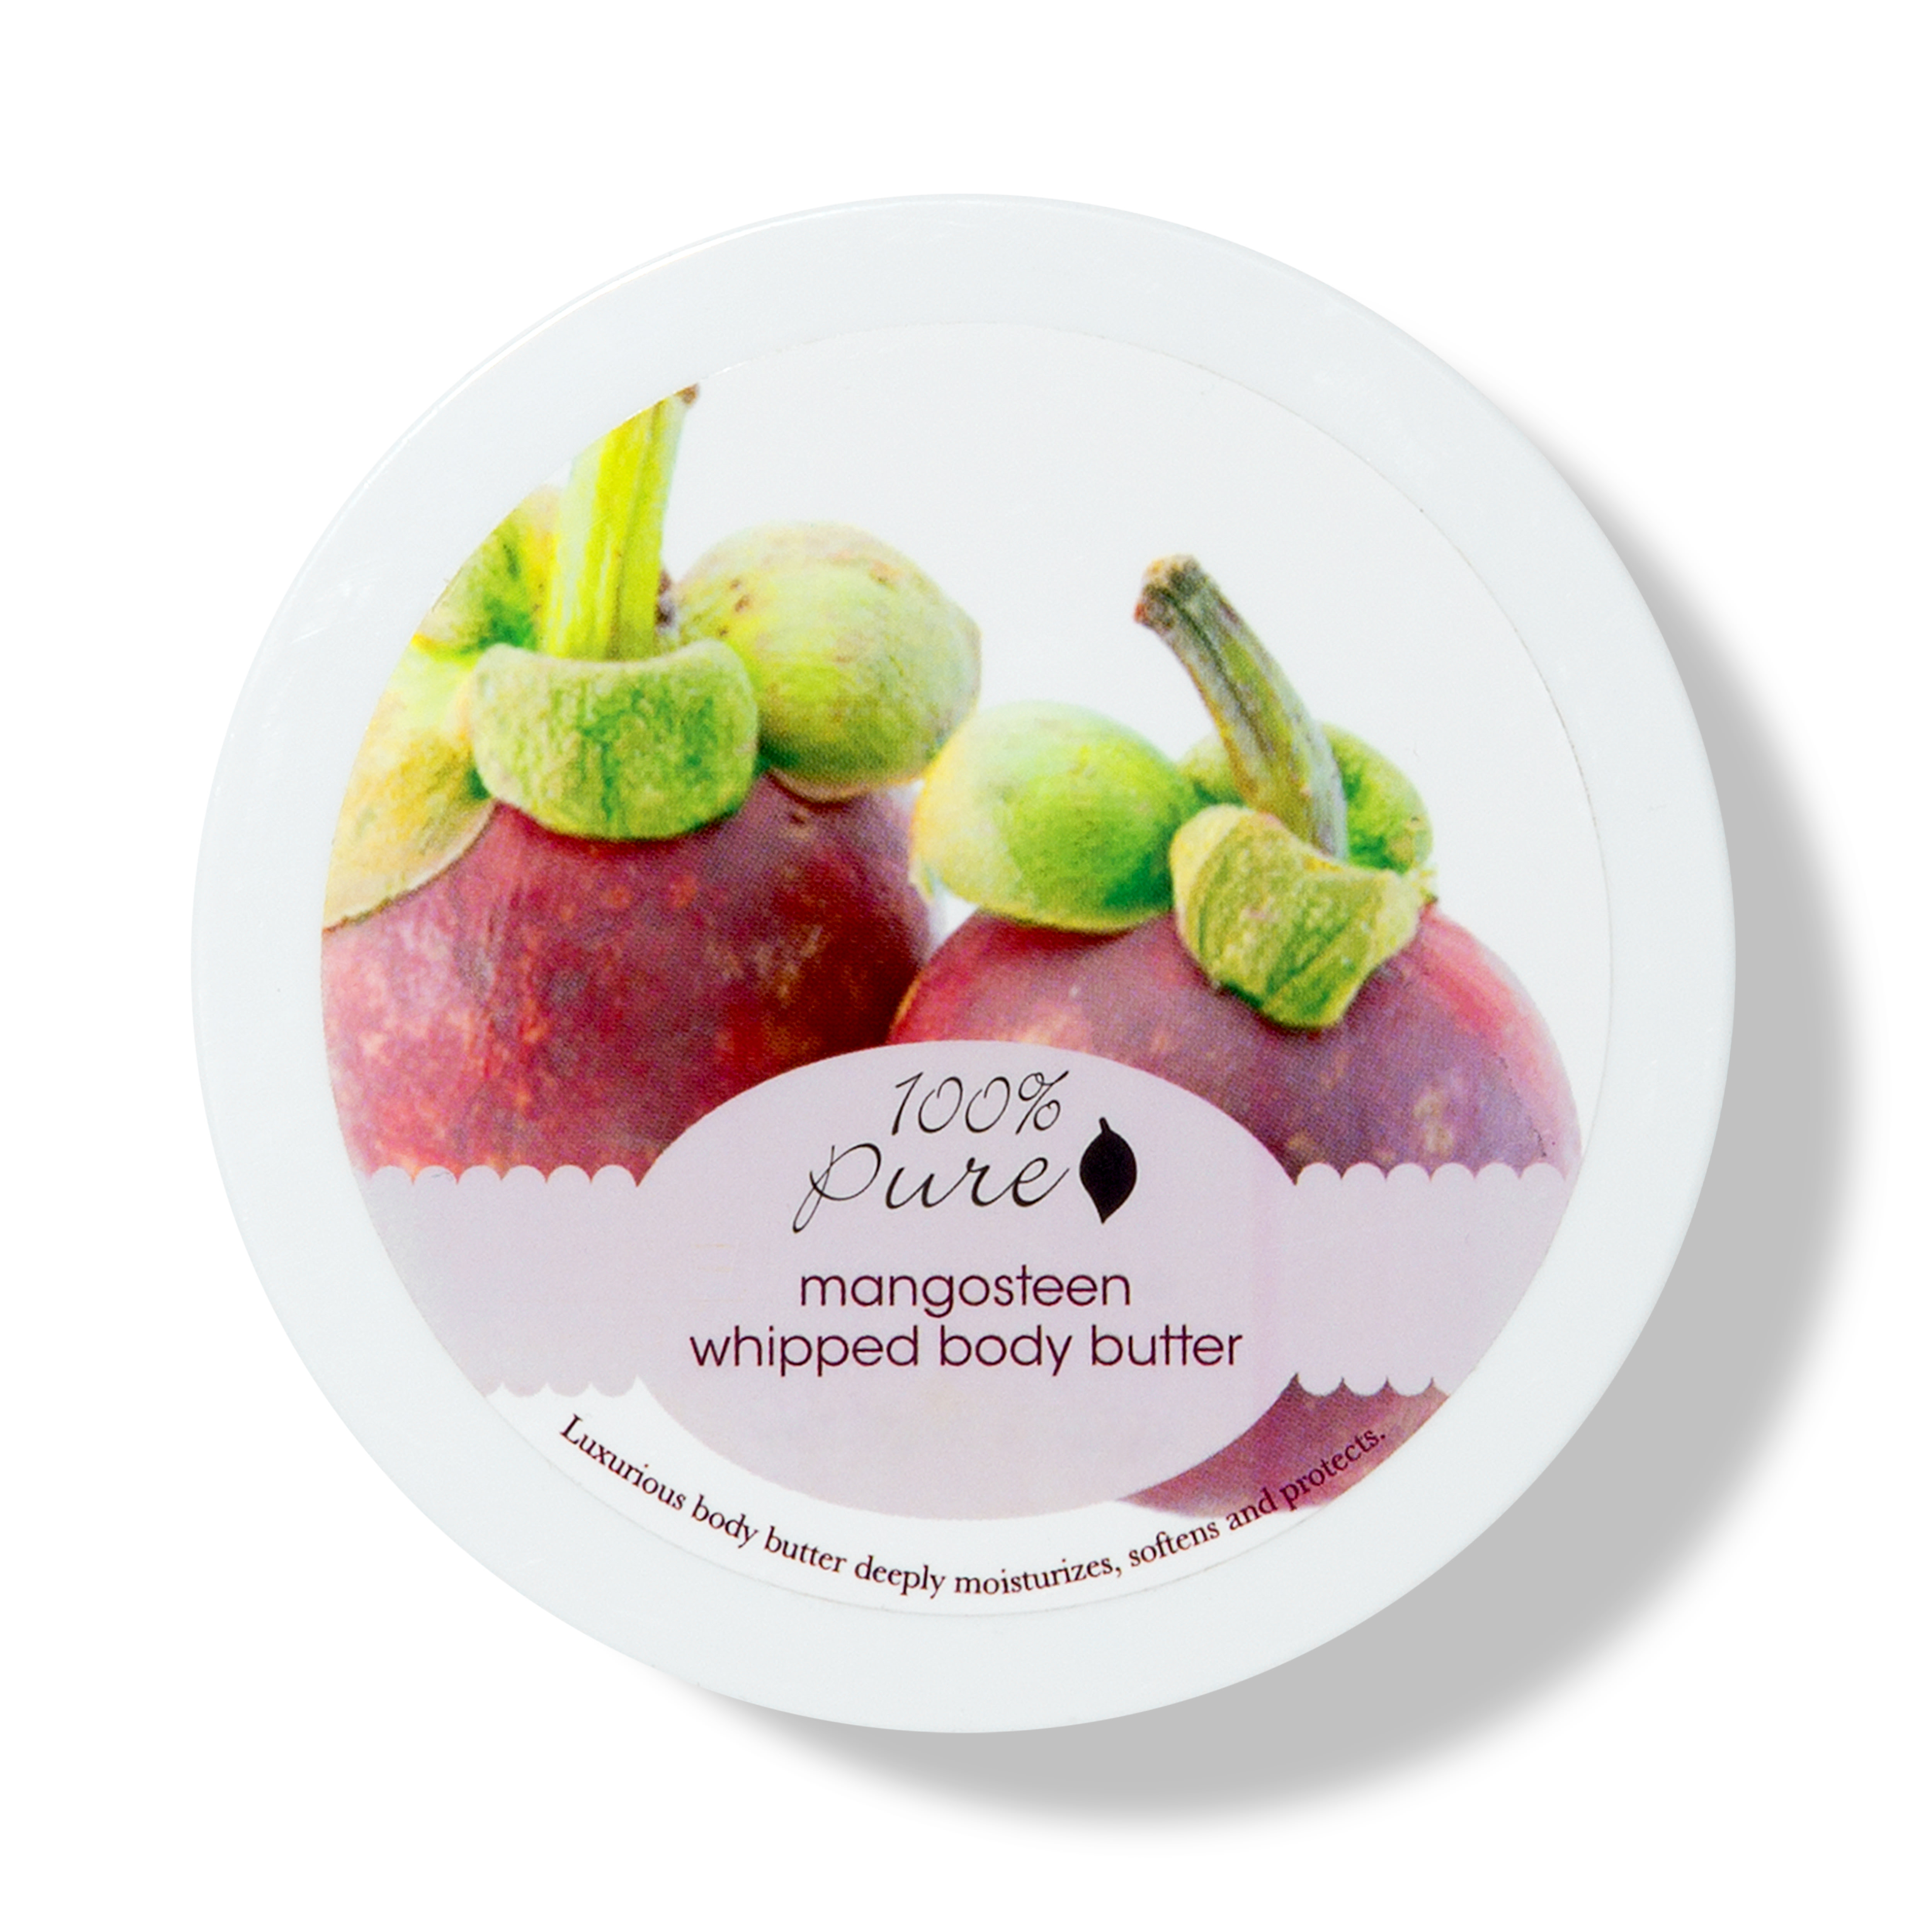 Product Grid - Mangosteen Whipped Body Butter